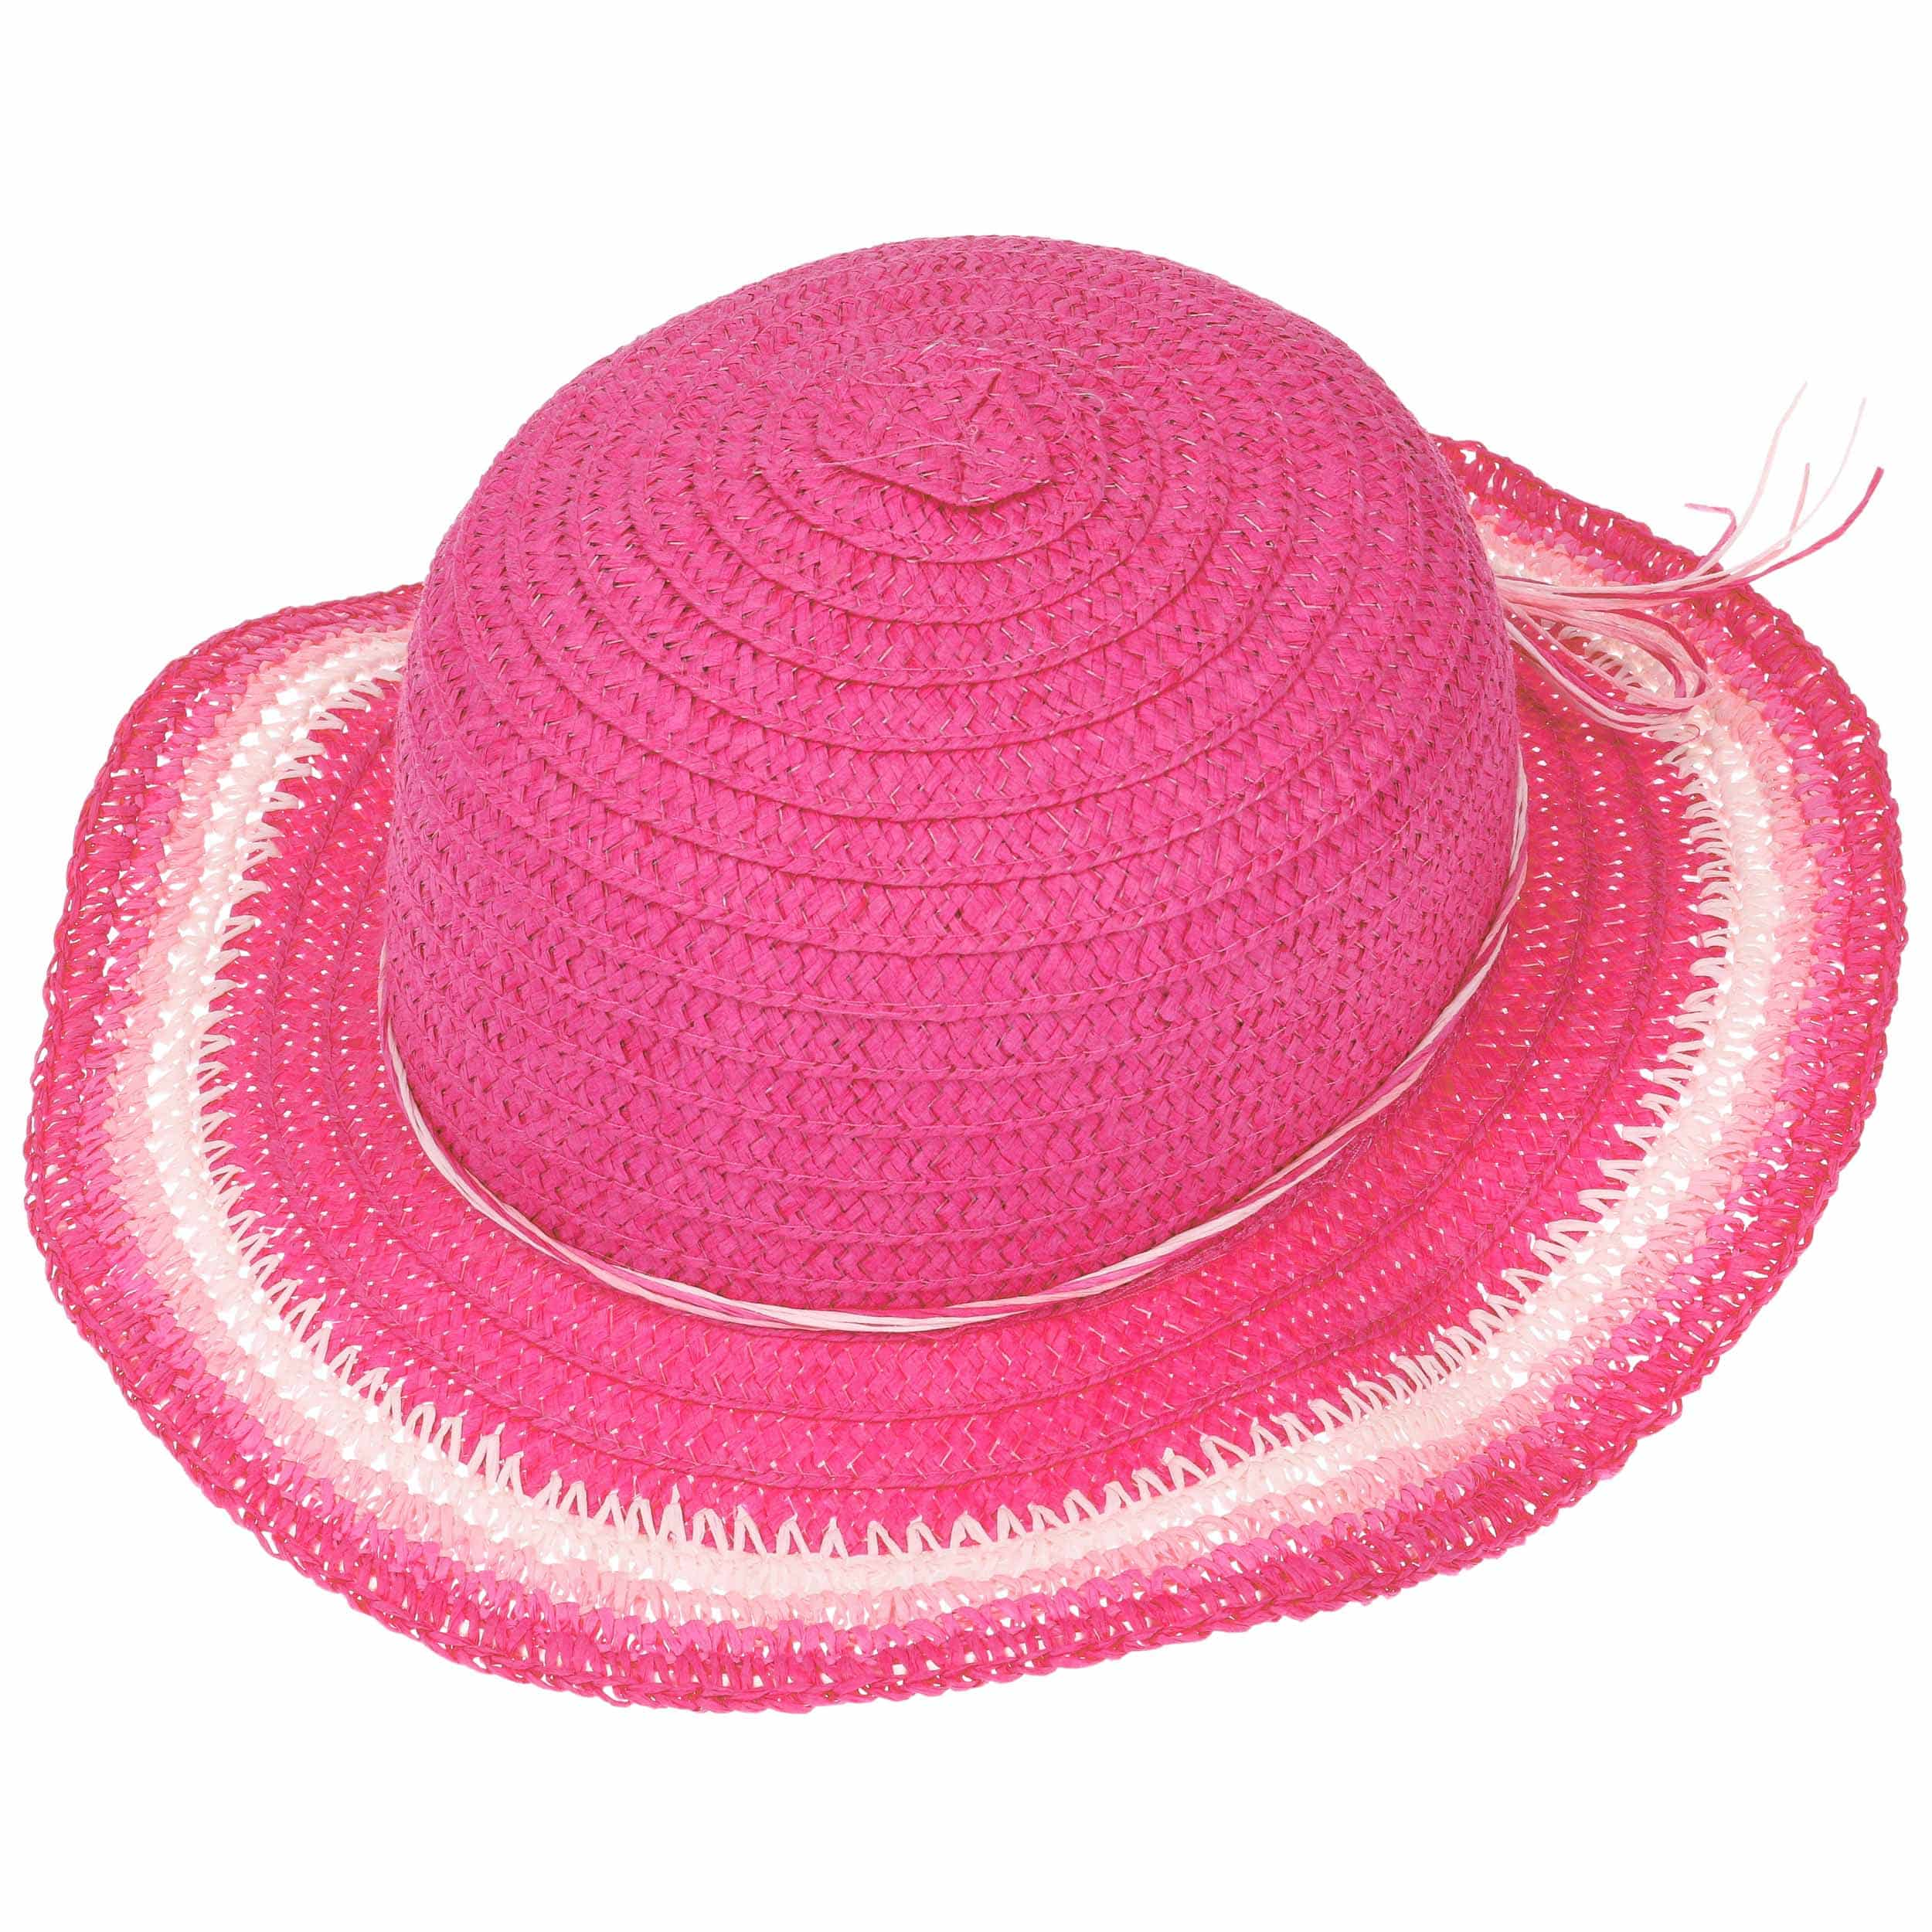 37a8f903632 Amina Girls´ Straw Hat by maximo - pink 1 ...